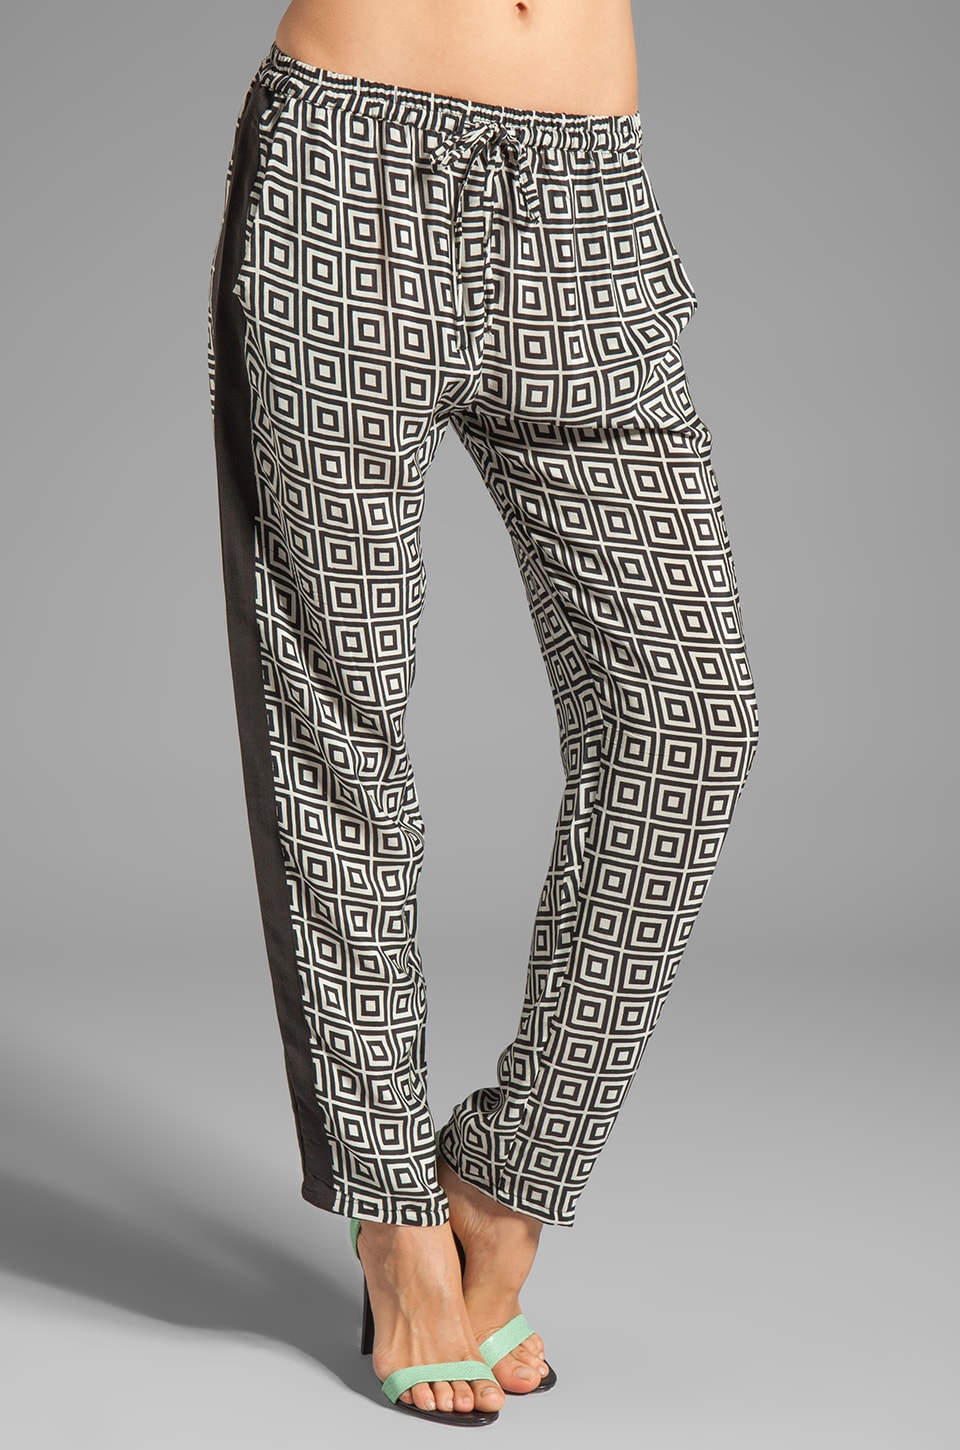 Tolani Carrie Silk Pant in Black/White Square